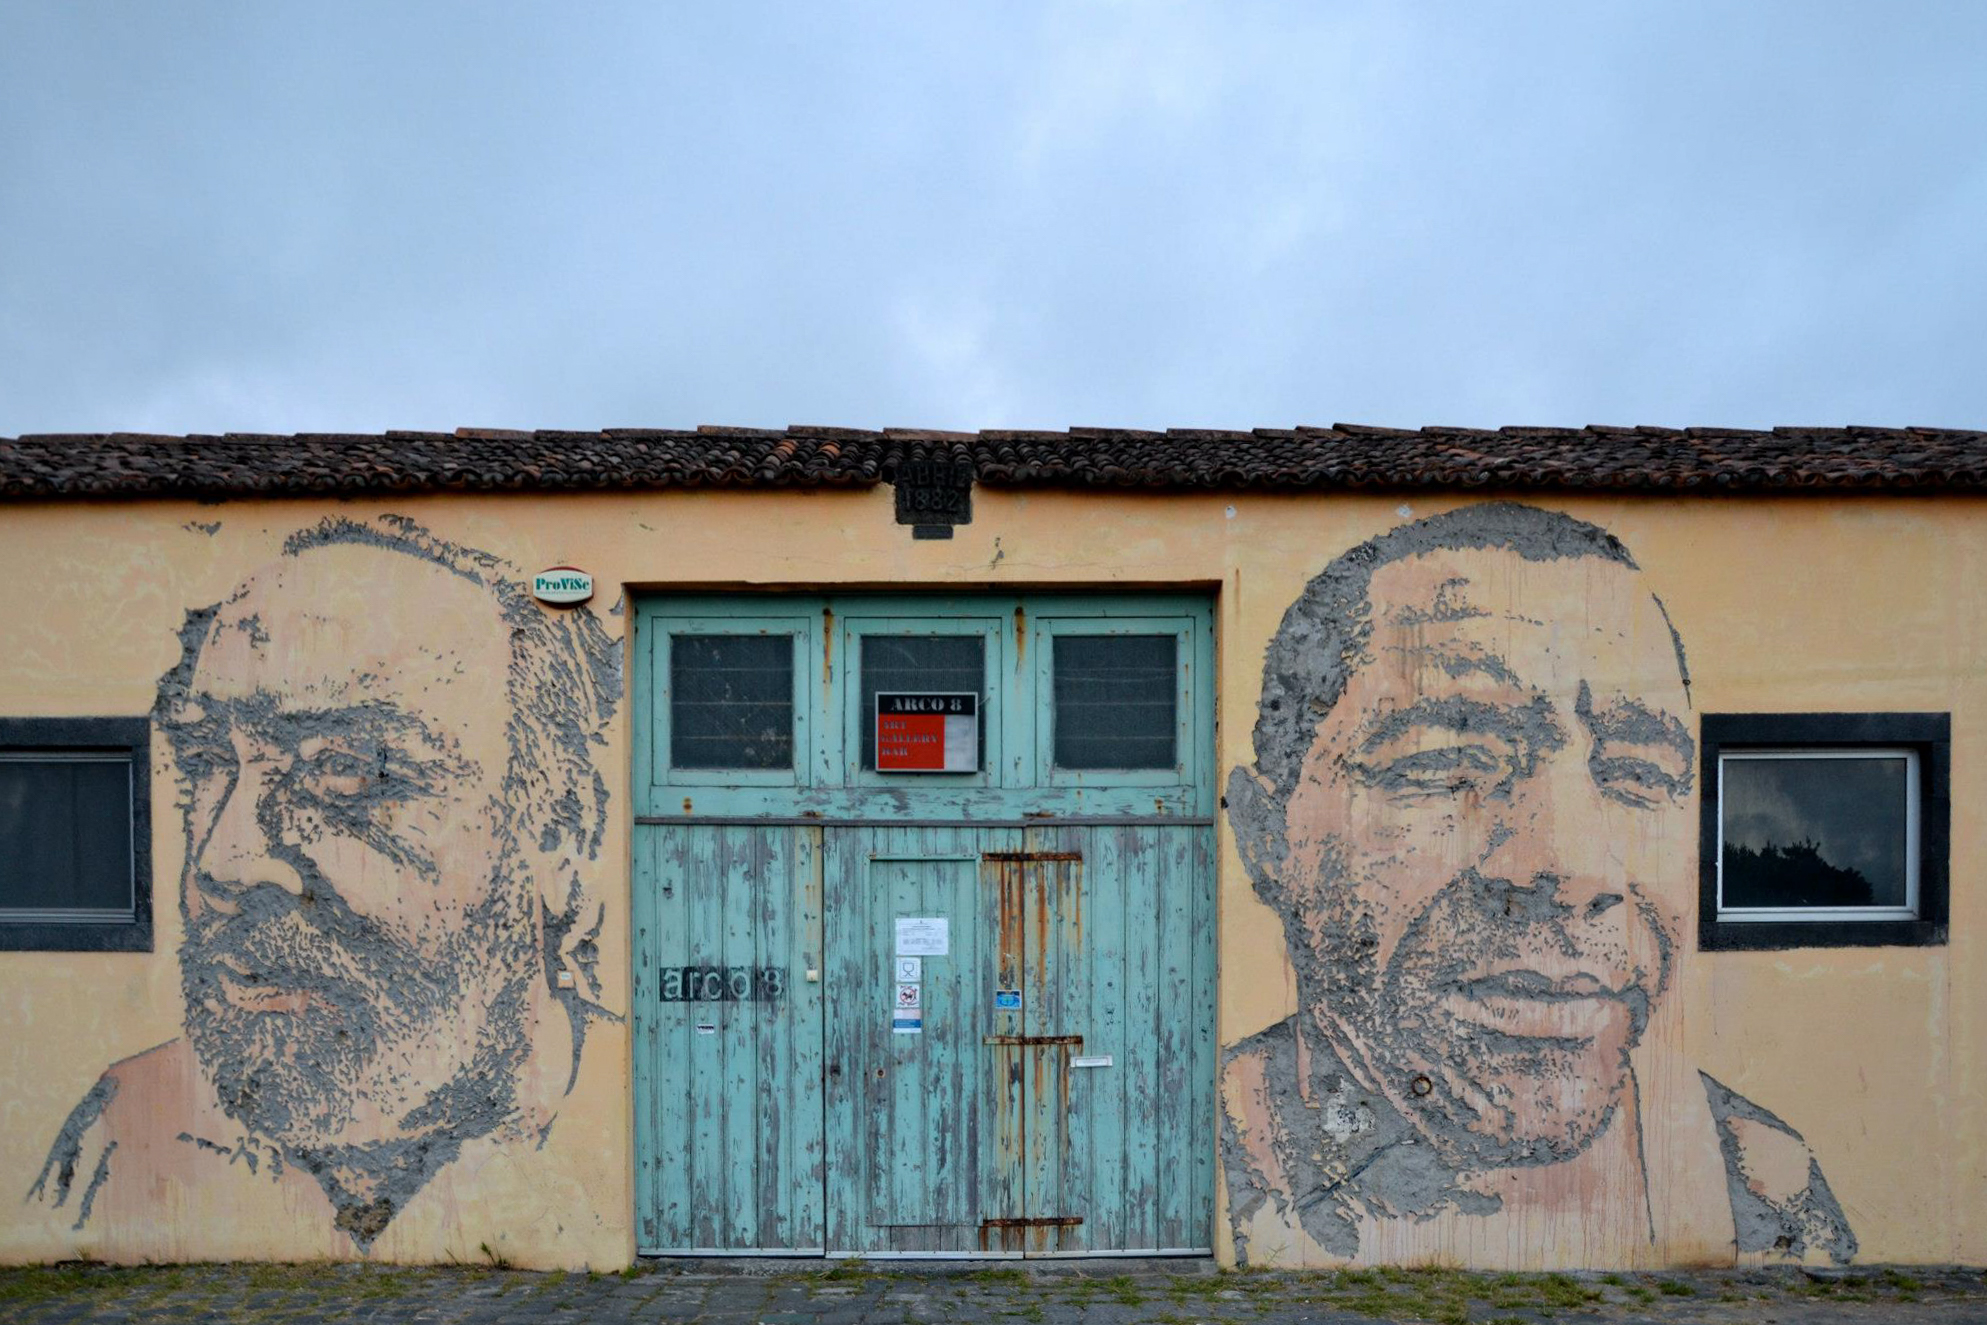 Artwork from Vhils at Arco 8